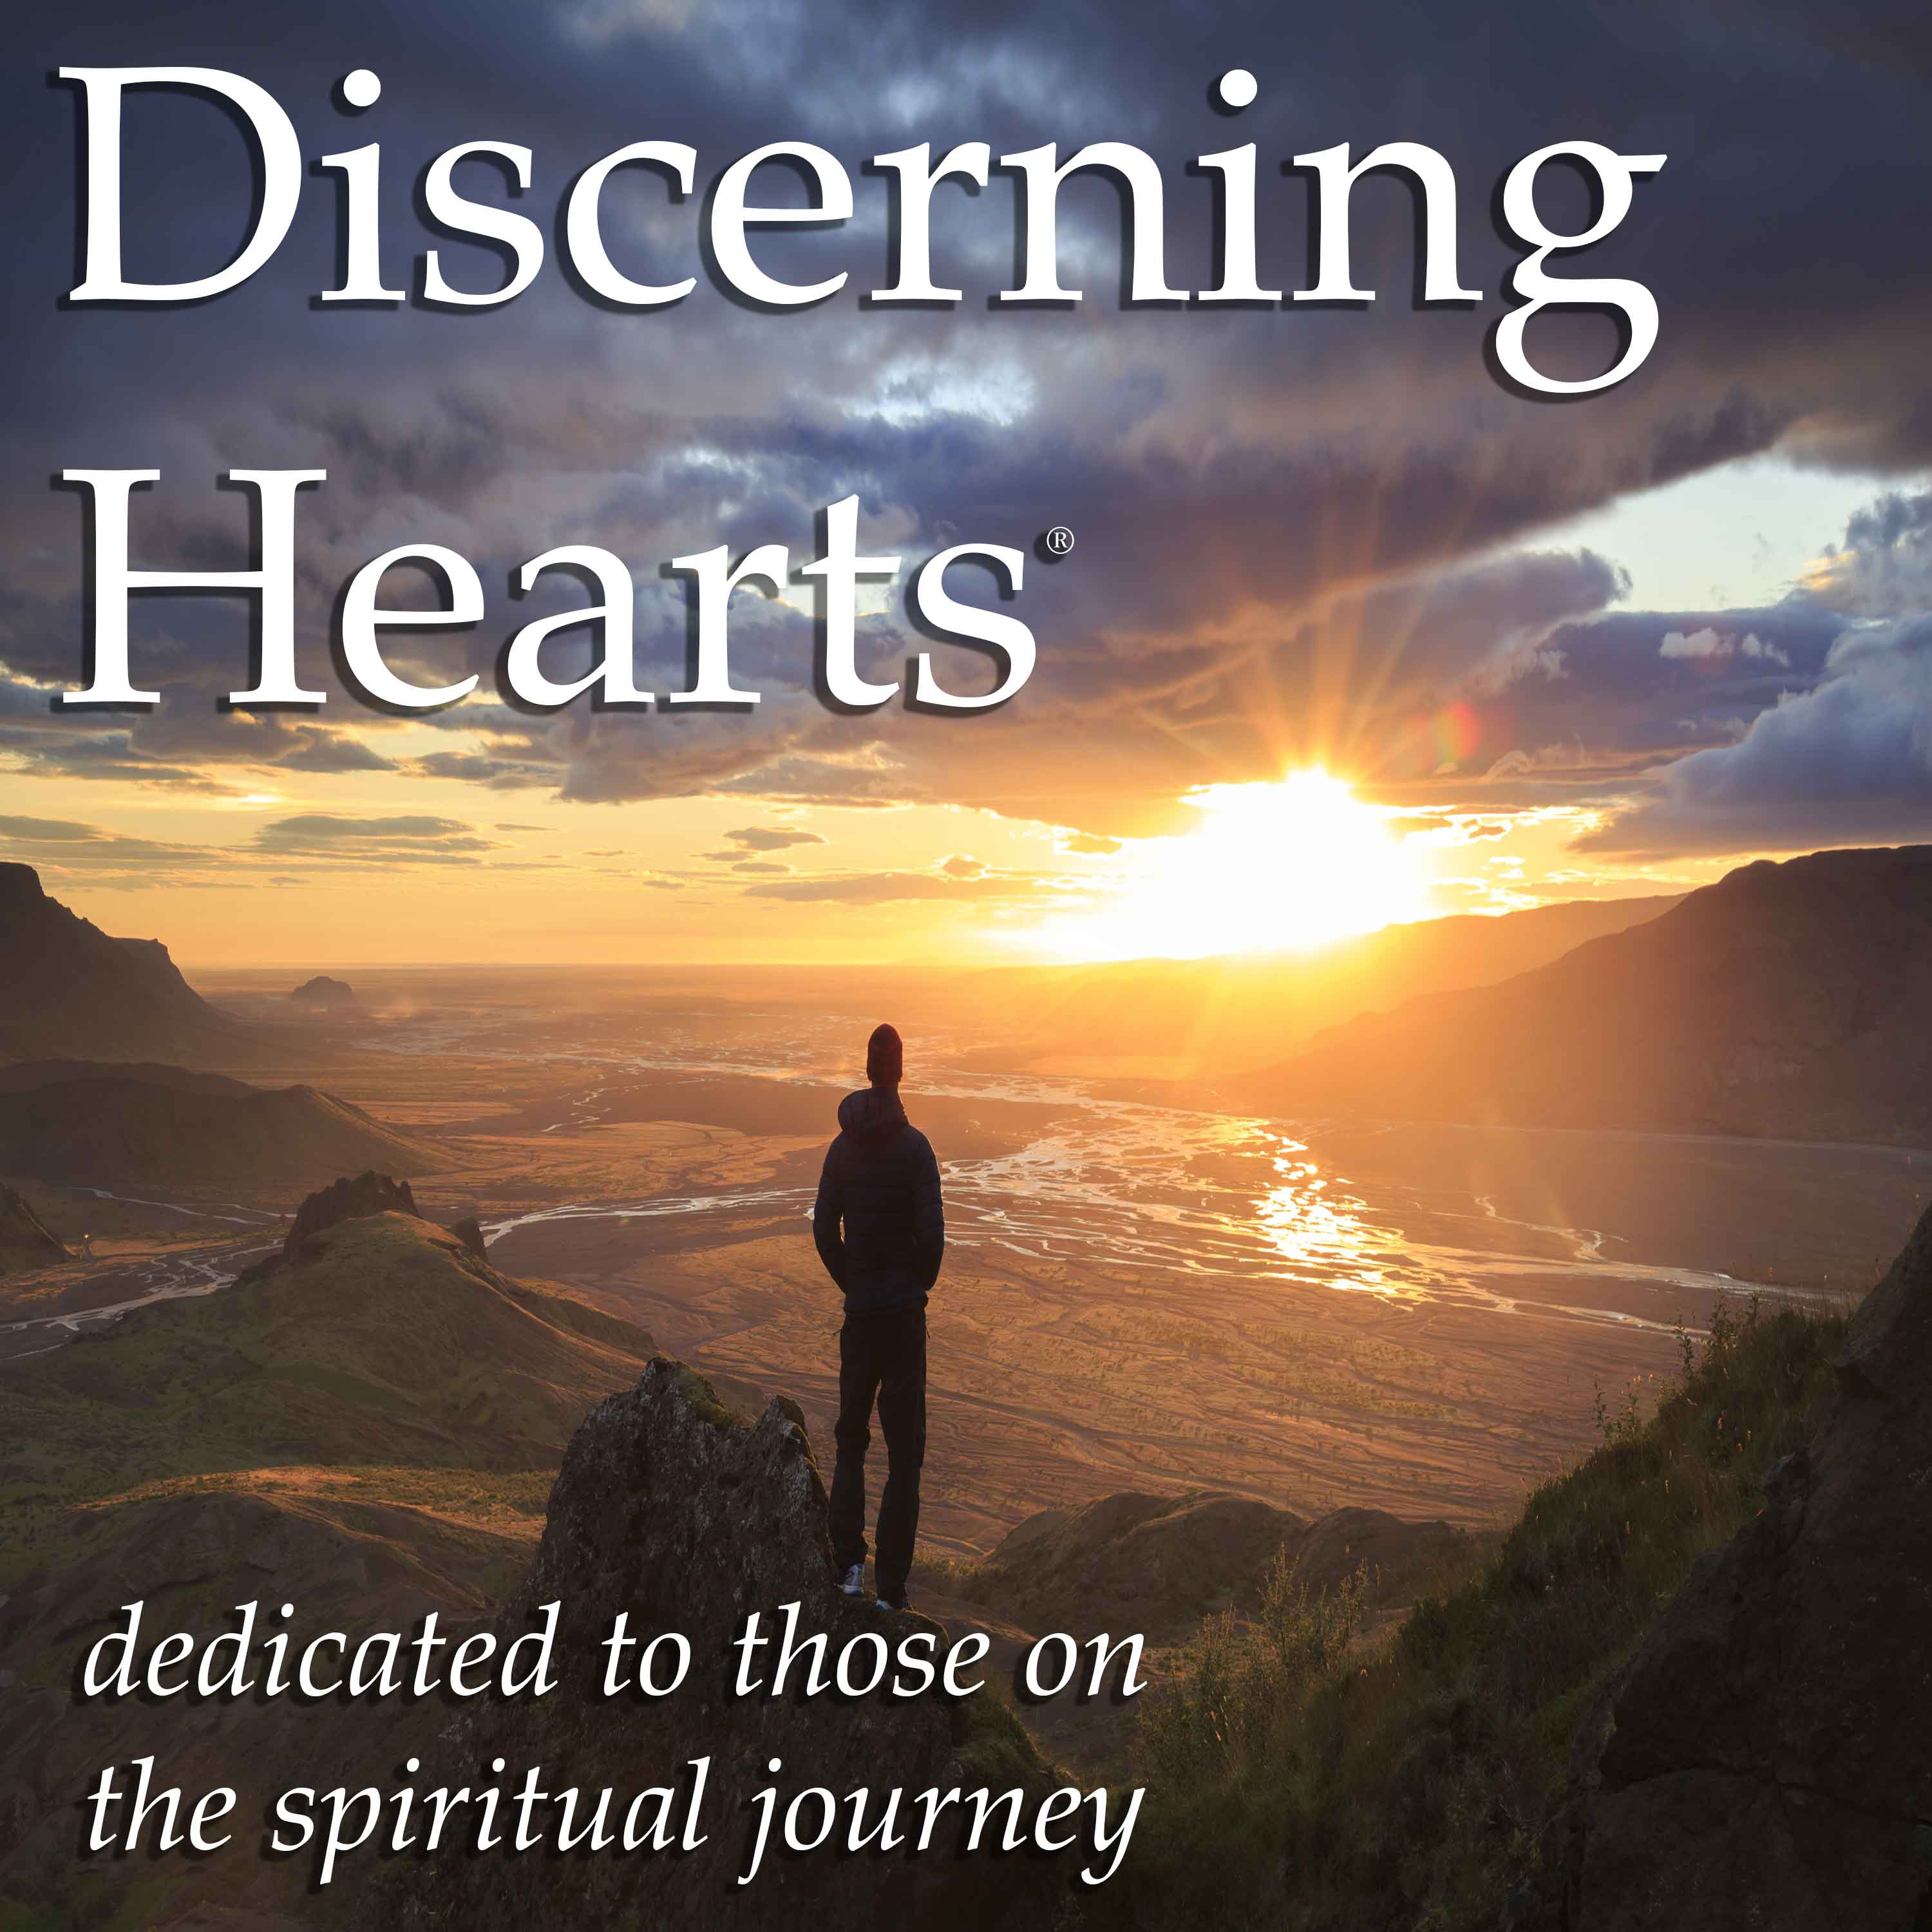 Ep 6  A Sister of St. Thrse: Servant of God, Lonie Martin  Bearer of Hope w/Fr. Timothy Gallagher  Discerning Hearts Podcast